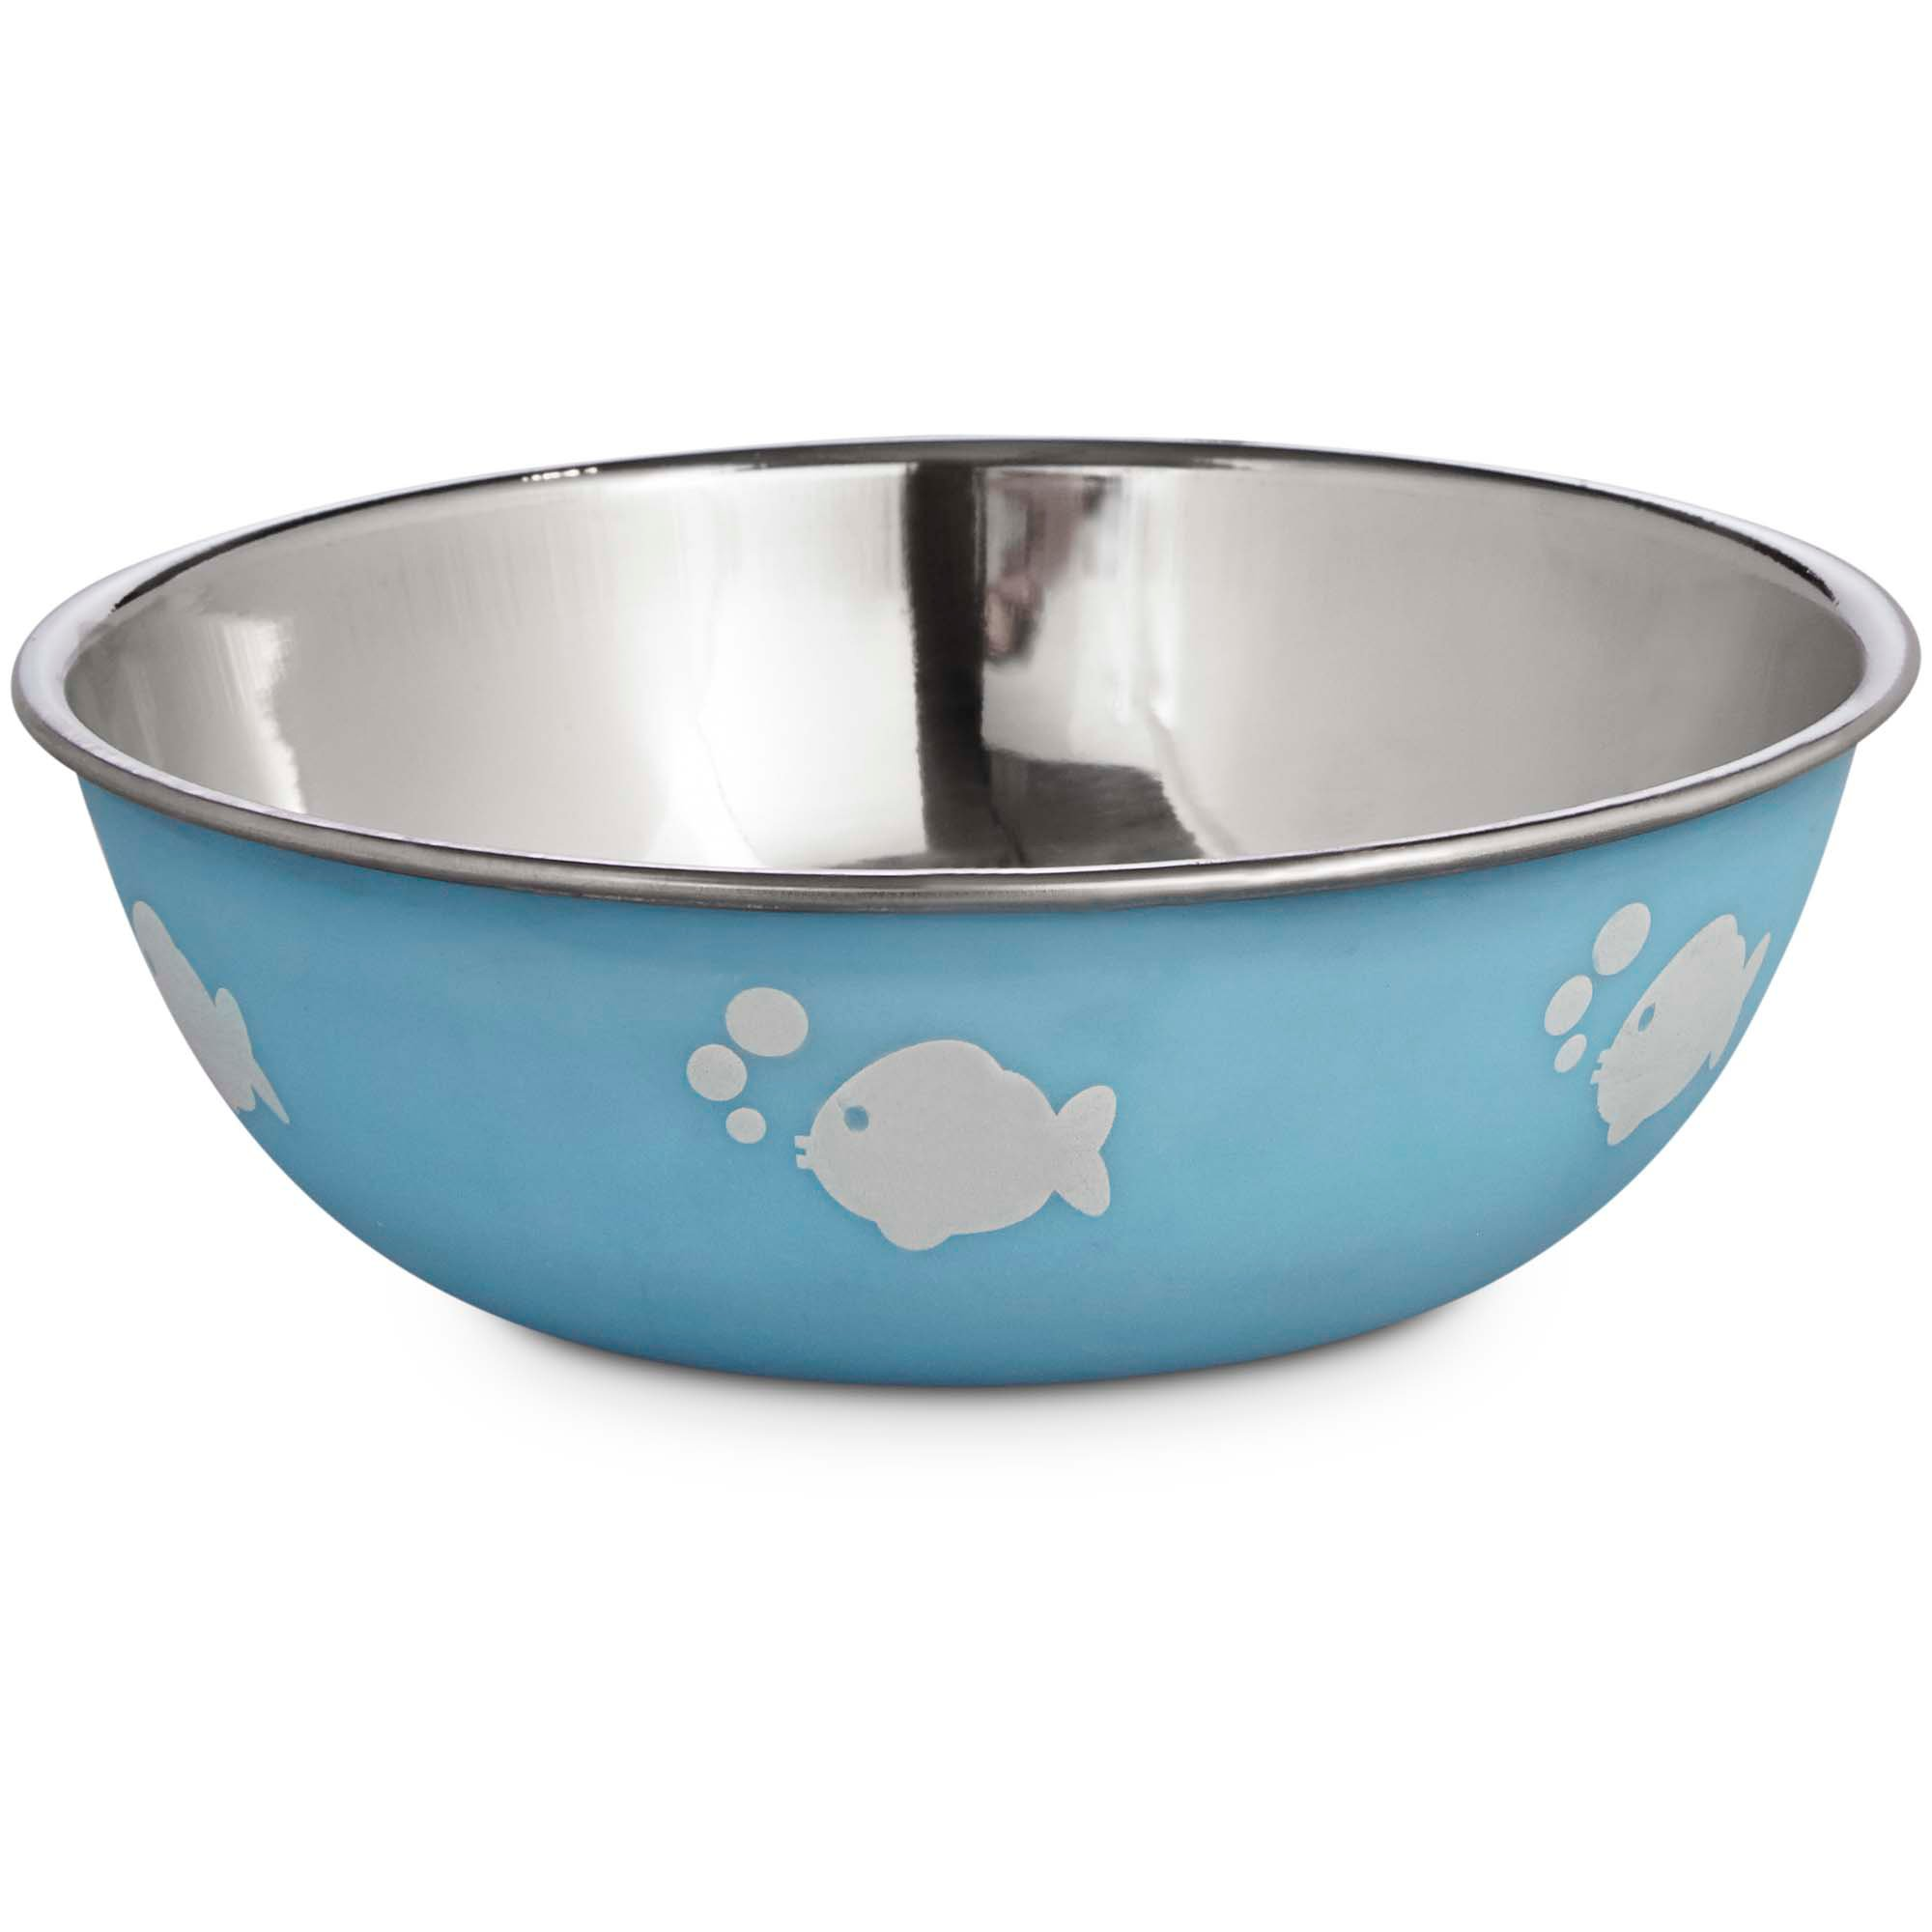 Harmony blue stainless steel cat bowl petco for Petco fish bowl